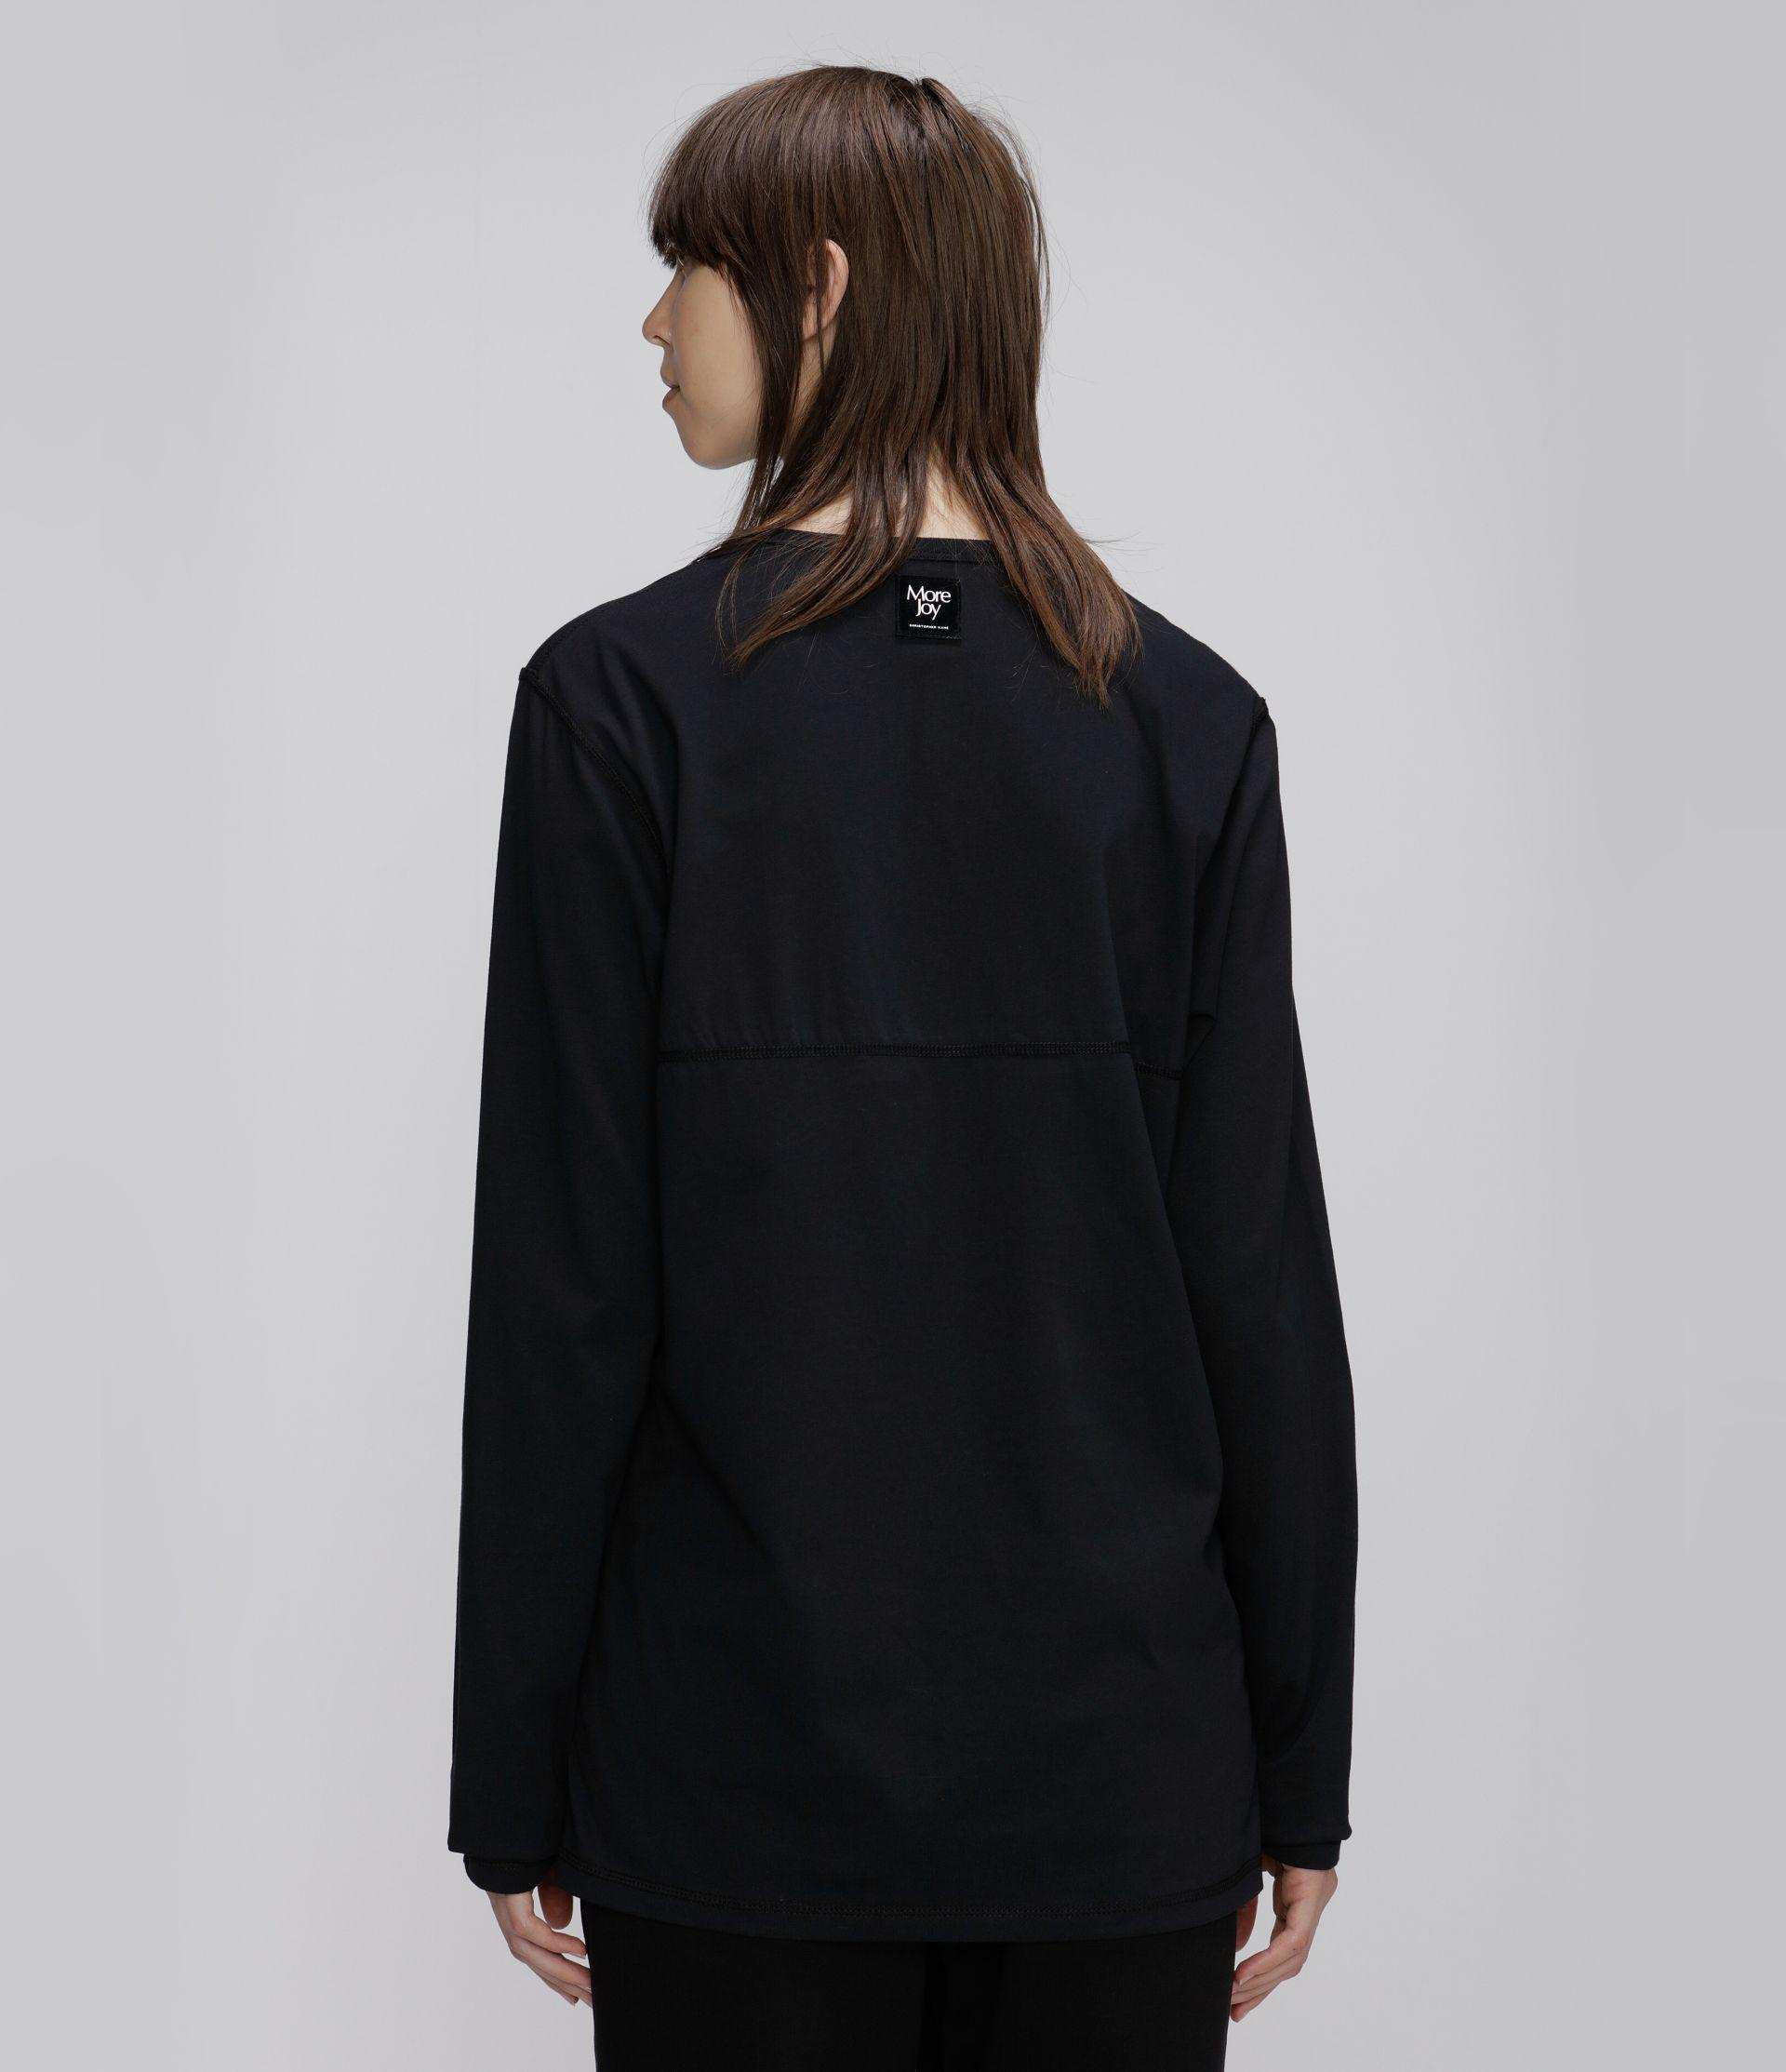 More Joy embroidered long sleeve t-shirt 2